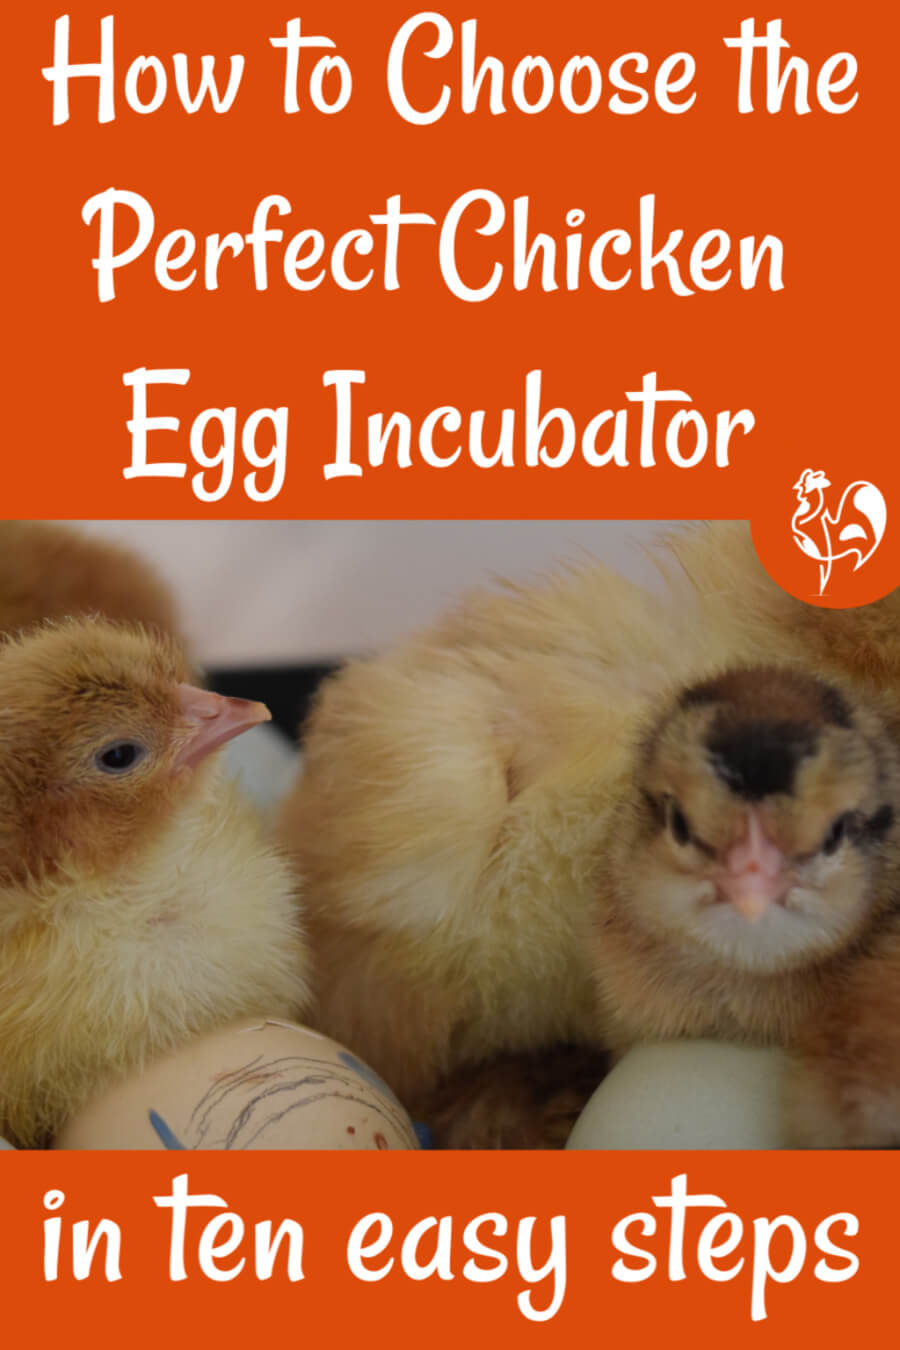 Link to help you choose the best incubator for your needs.